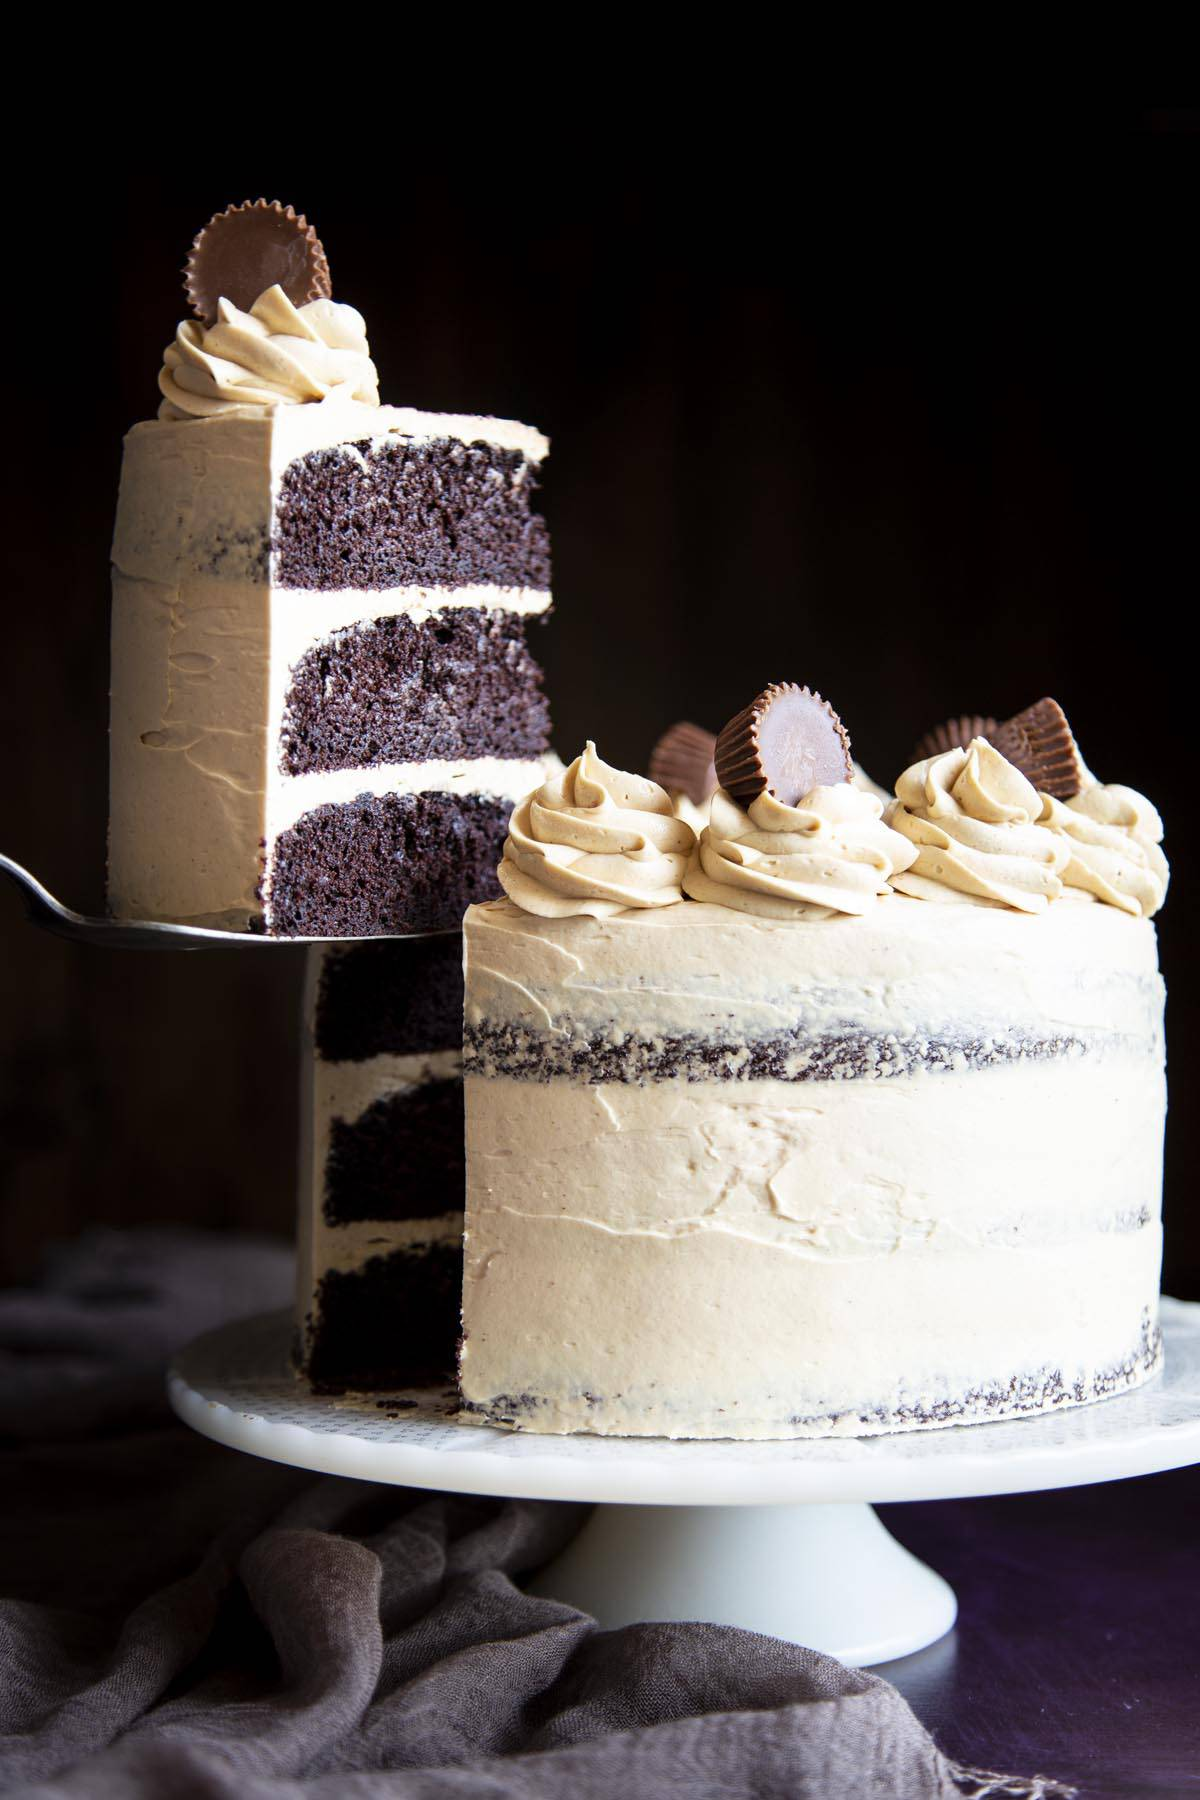 A slice of chocolate cake covered in peanut butter frosting is being lifted off the cake stand with the whole cake